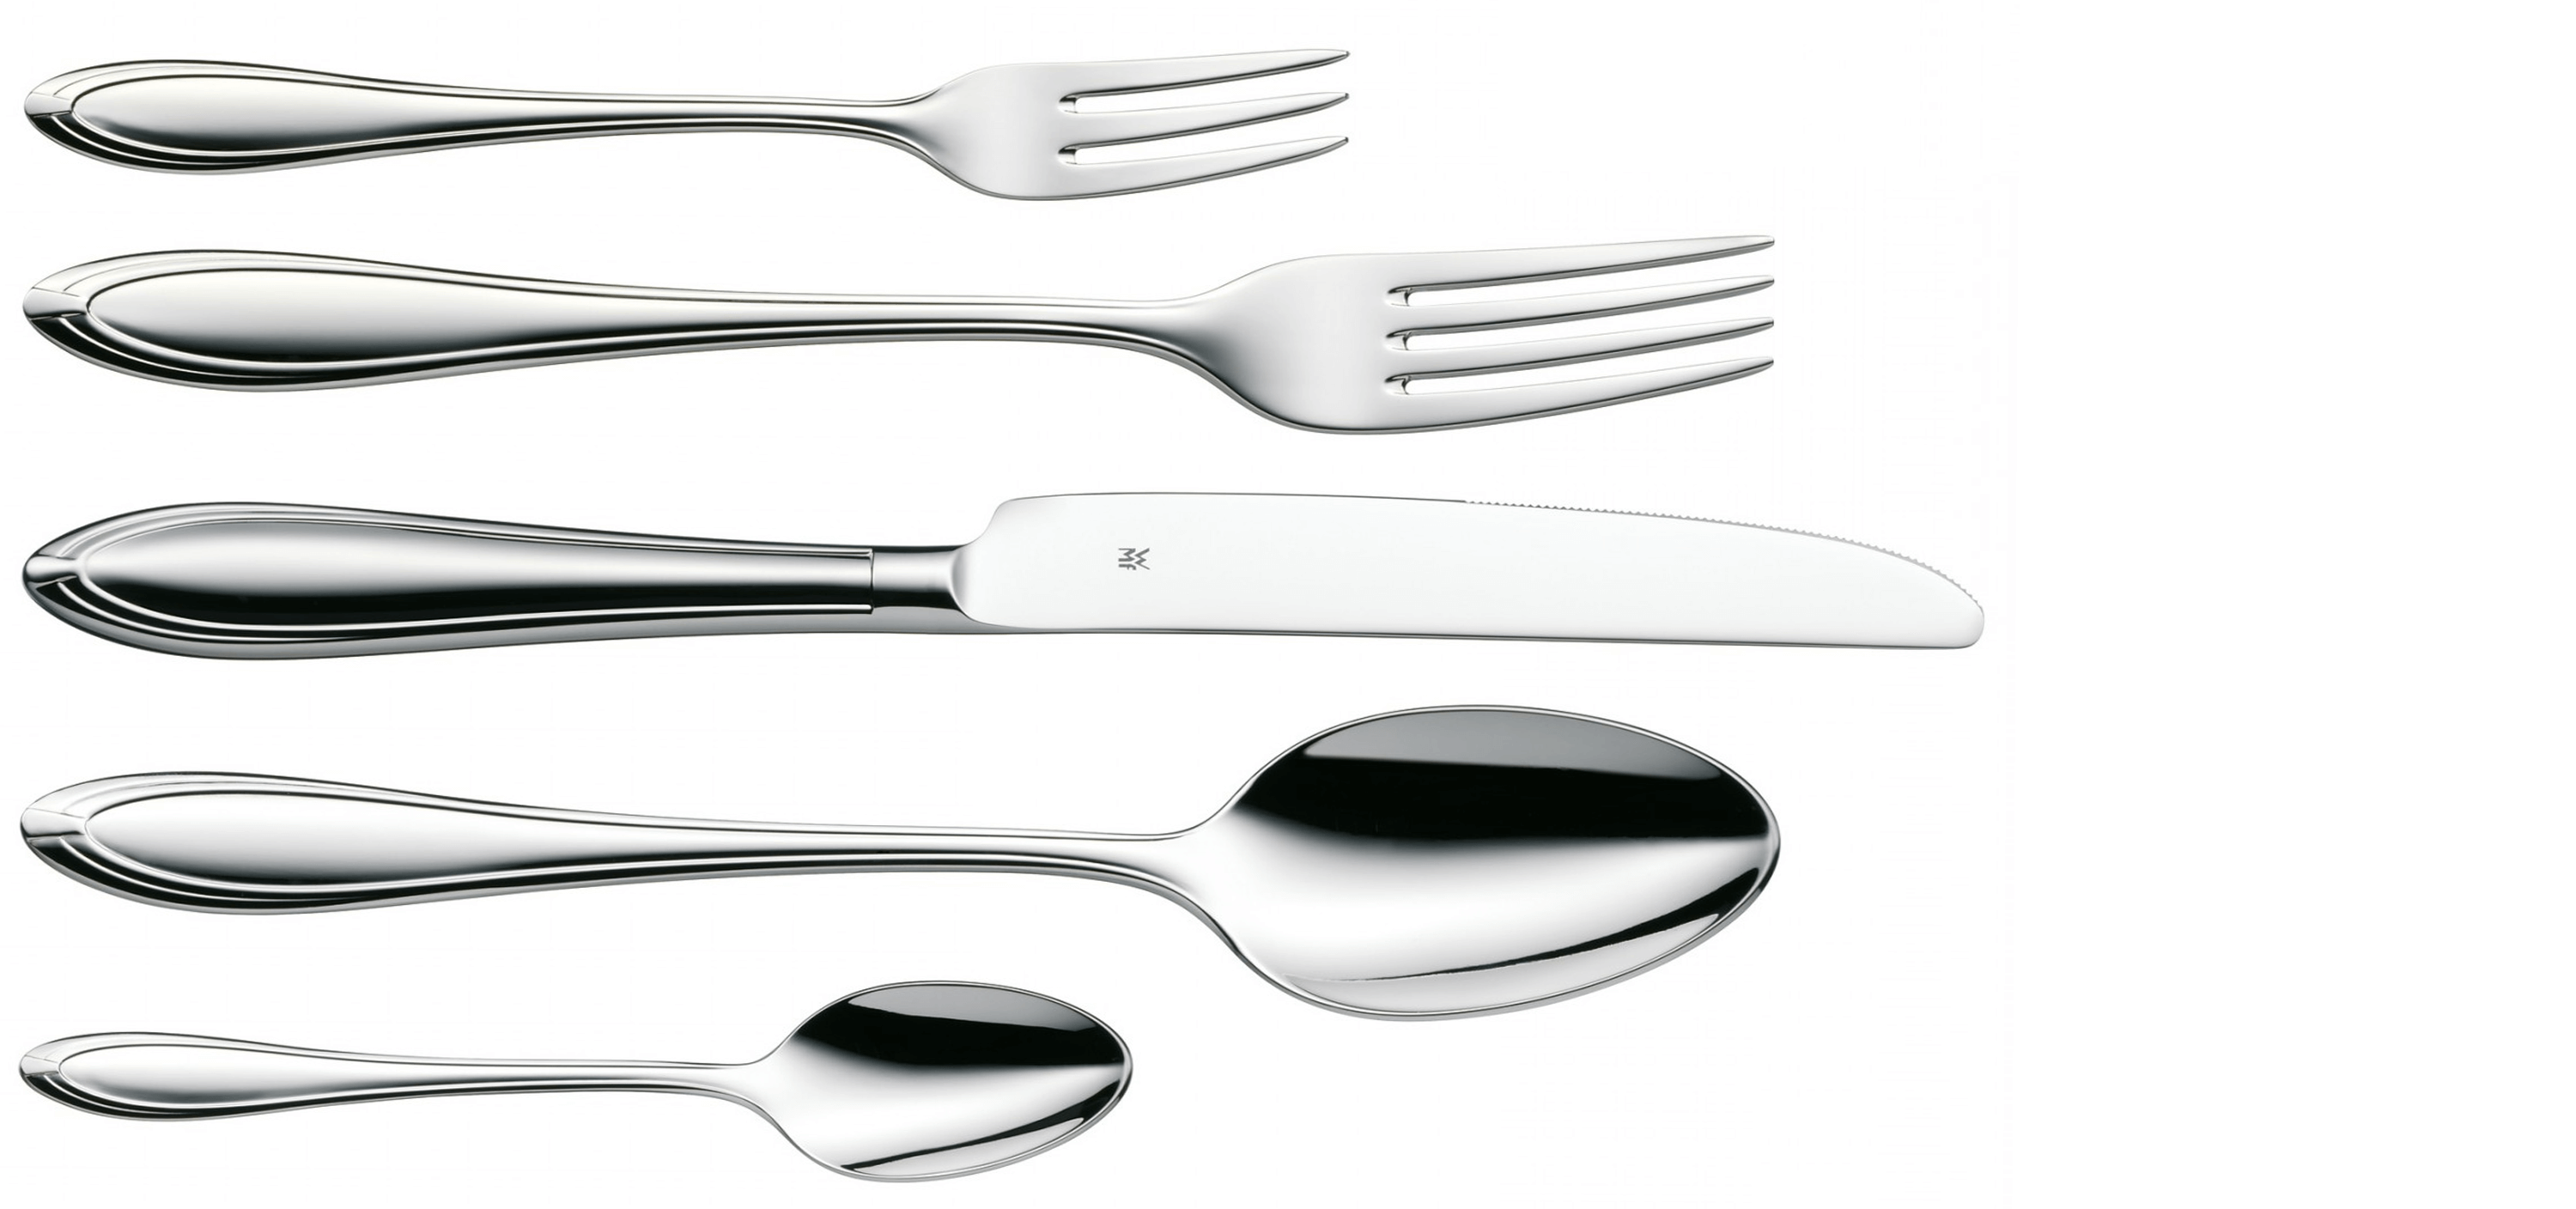 Atelier - cutlery collection